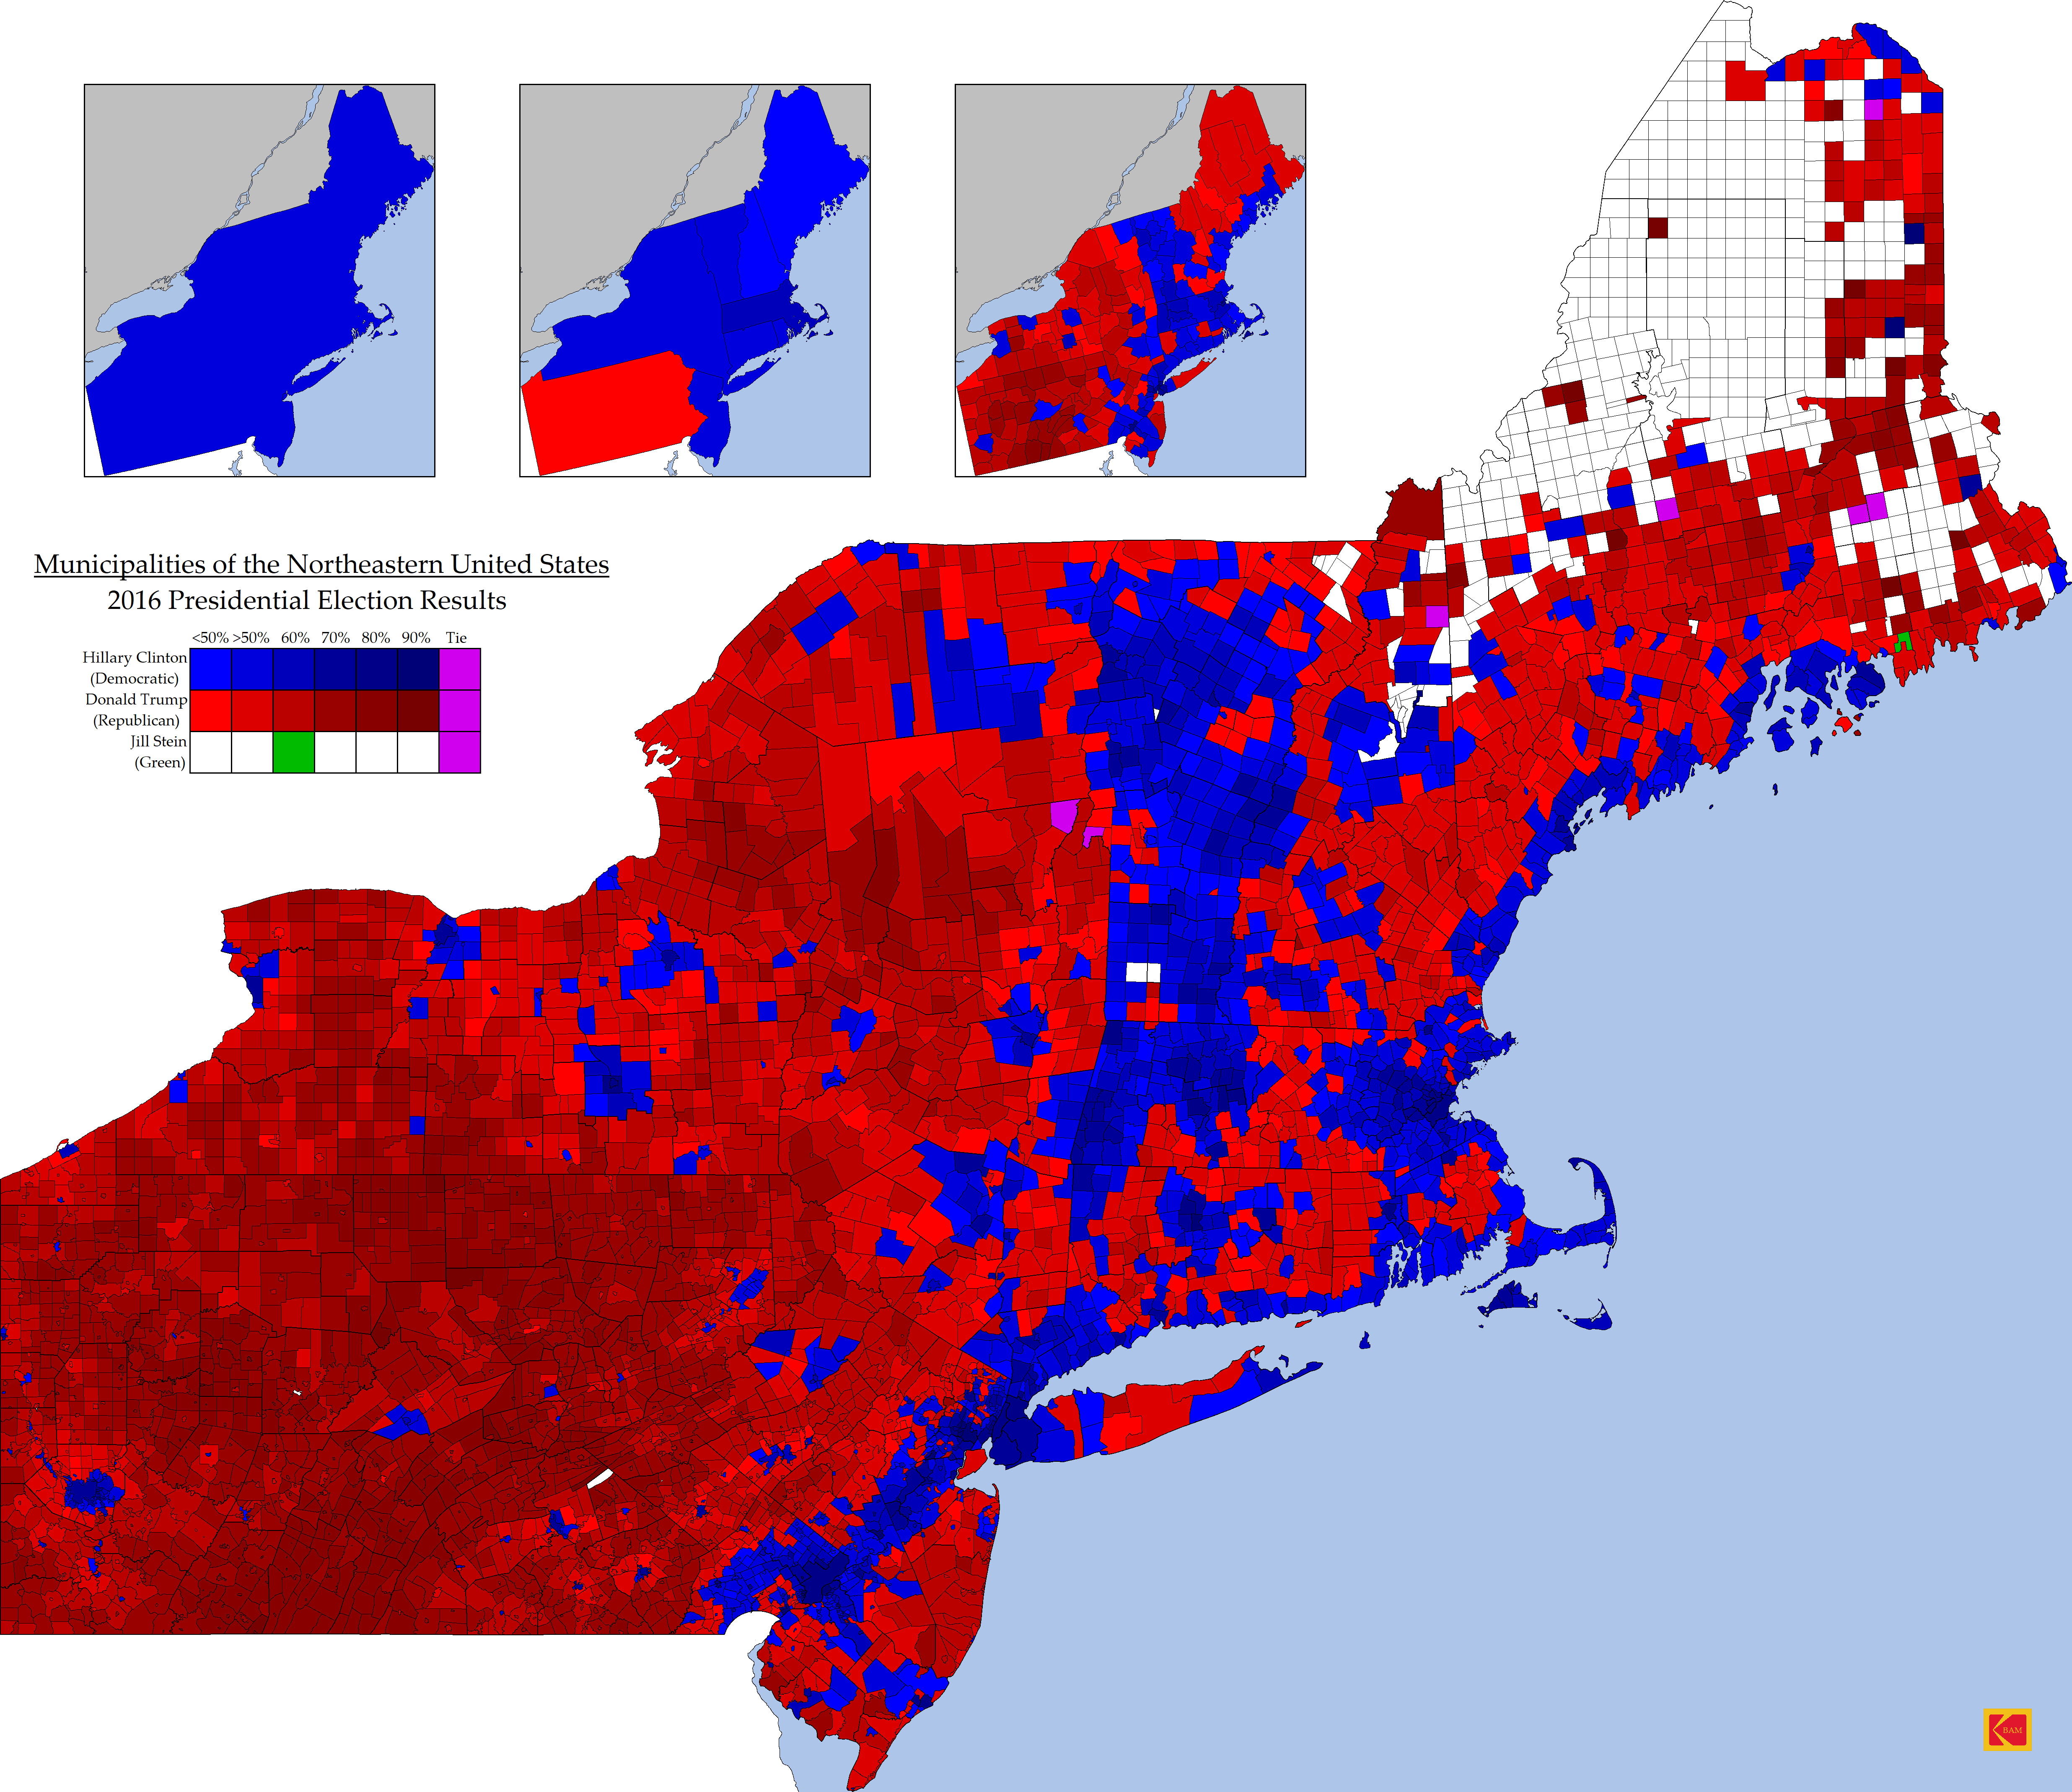 Us Map Democrat Republican States 2016.2016 Election Results In The Northeast Us Abstract Facts